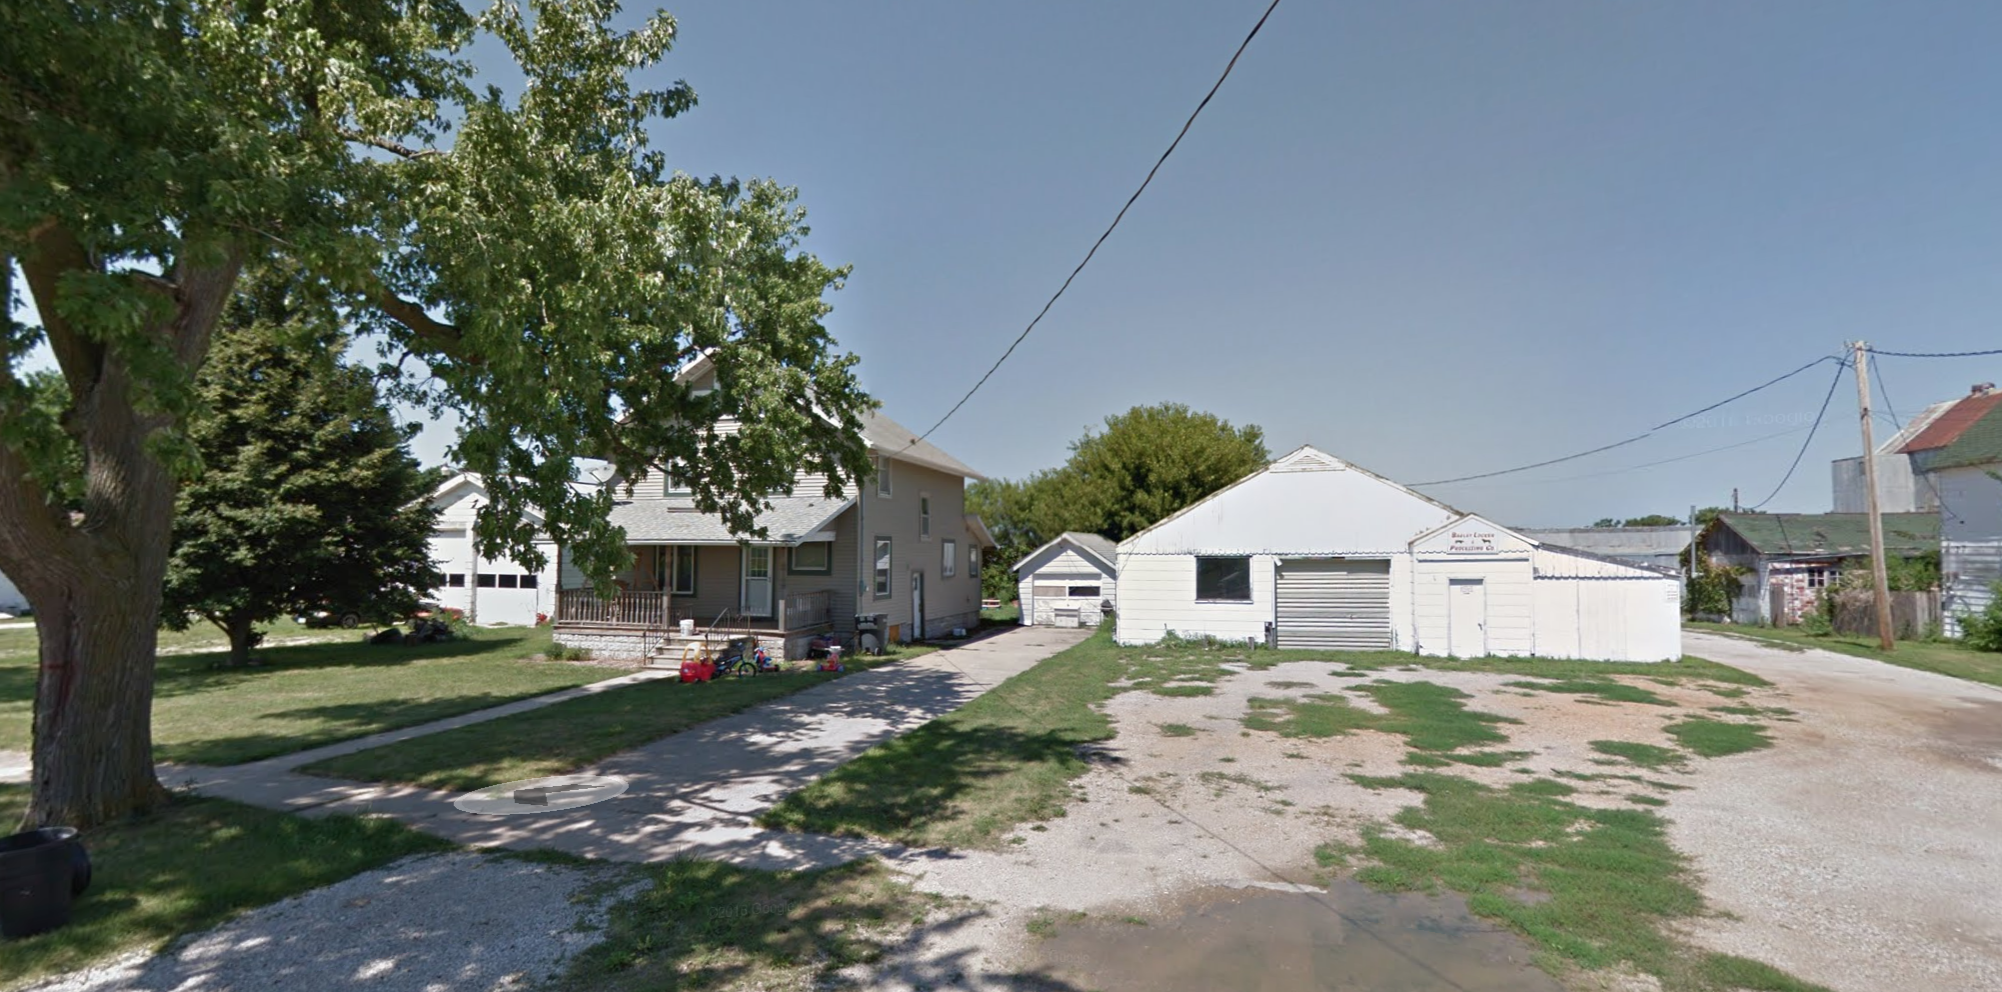 The Lestina household (left) is located directly adjacent to Dahl's locker (right). (Google Street View)